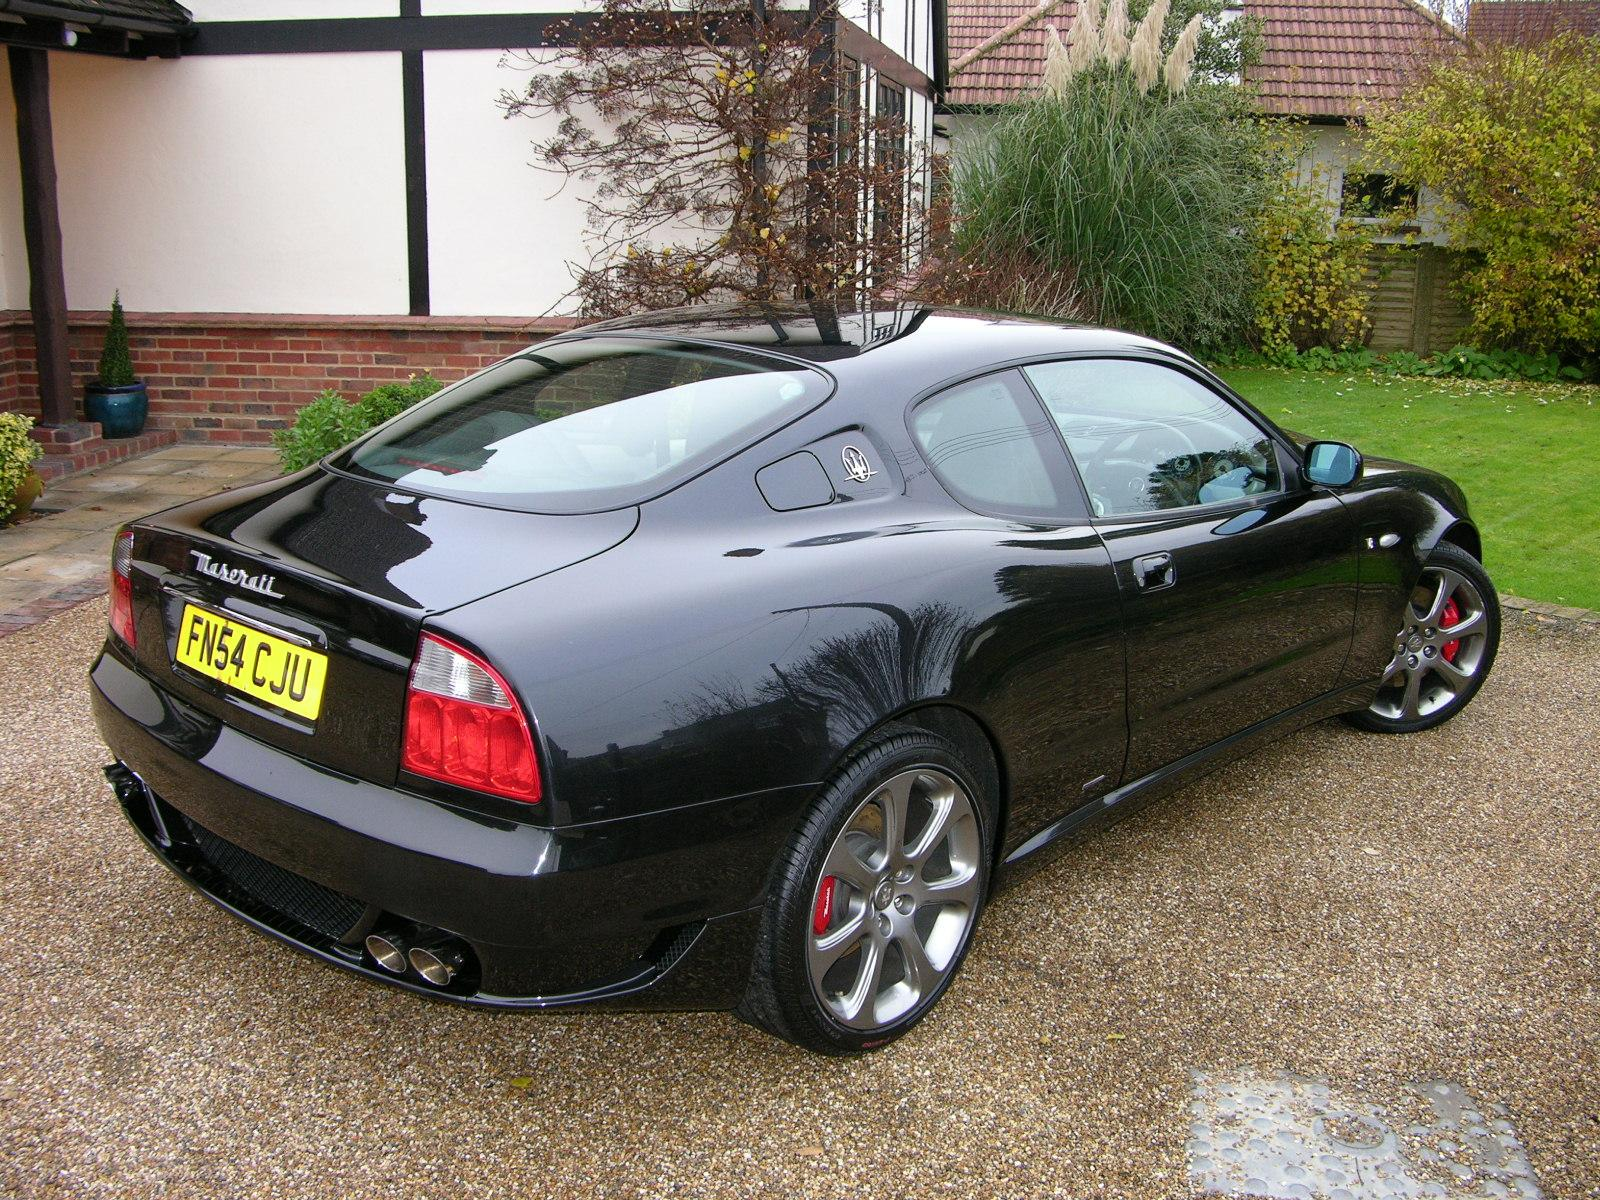 1999 Maserati 3200 gt - pictures, information and specs ...